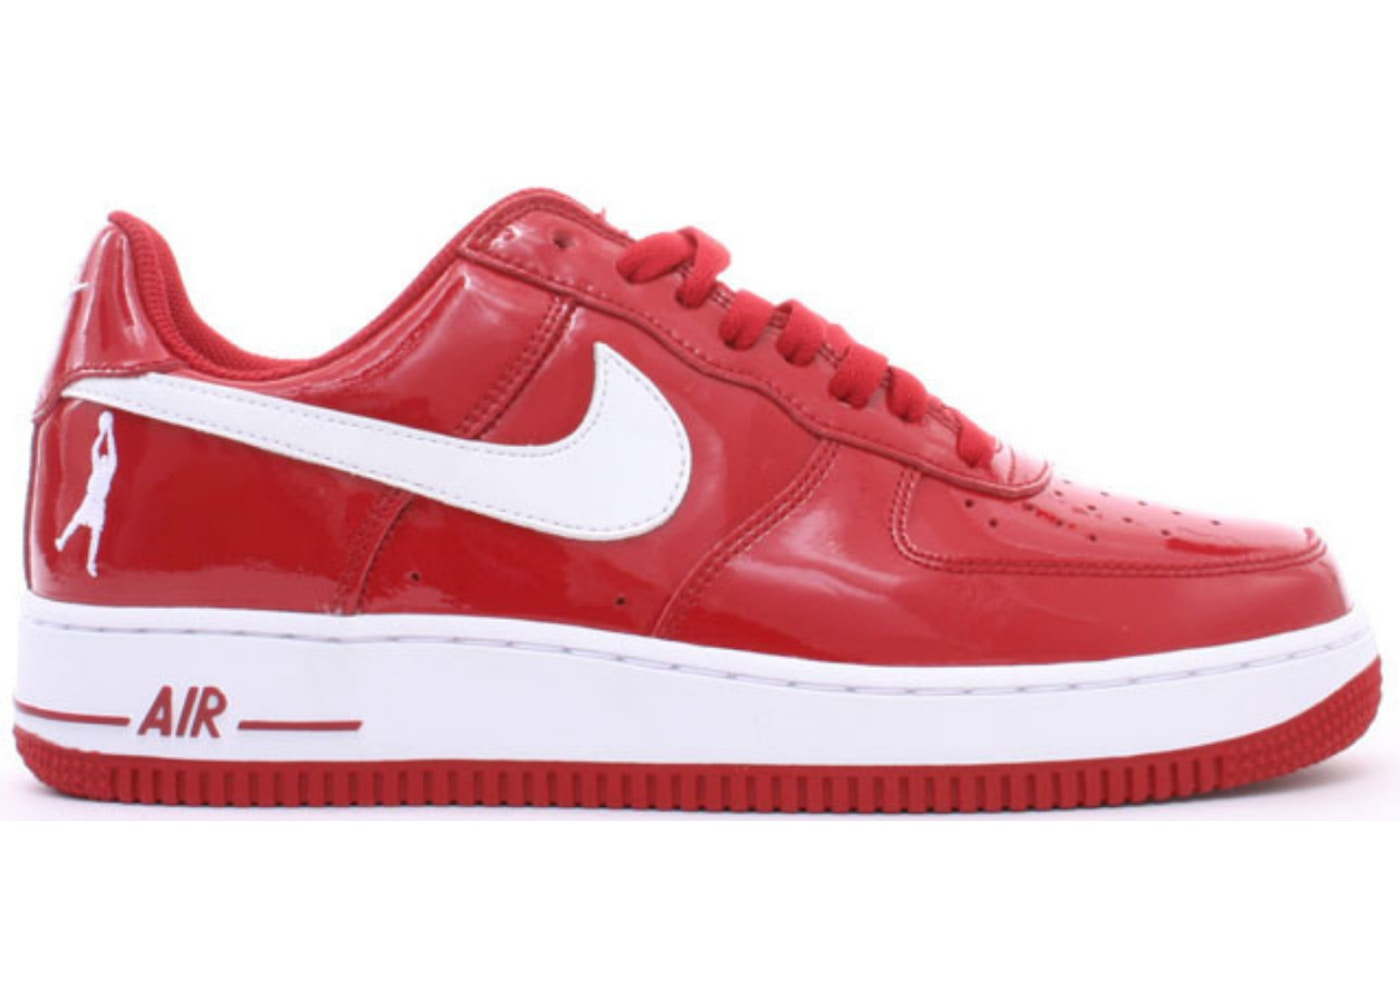 6a9e9fcf Air Force 1 Low Sheed Varsity Red - 306347-611